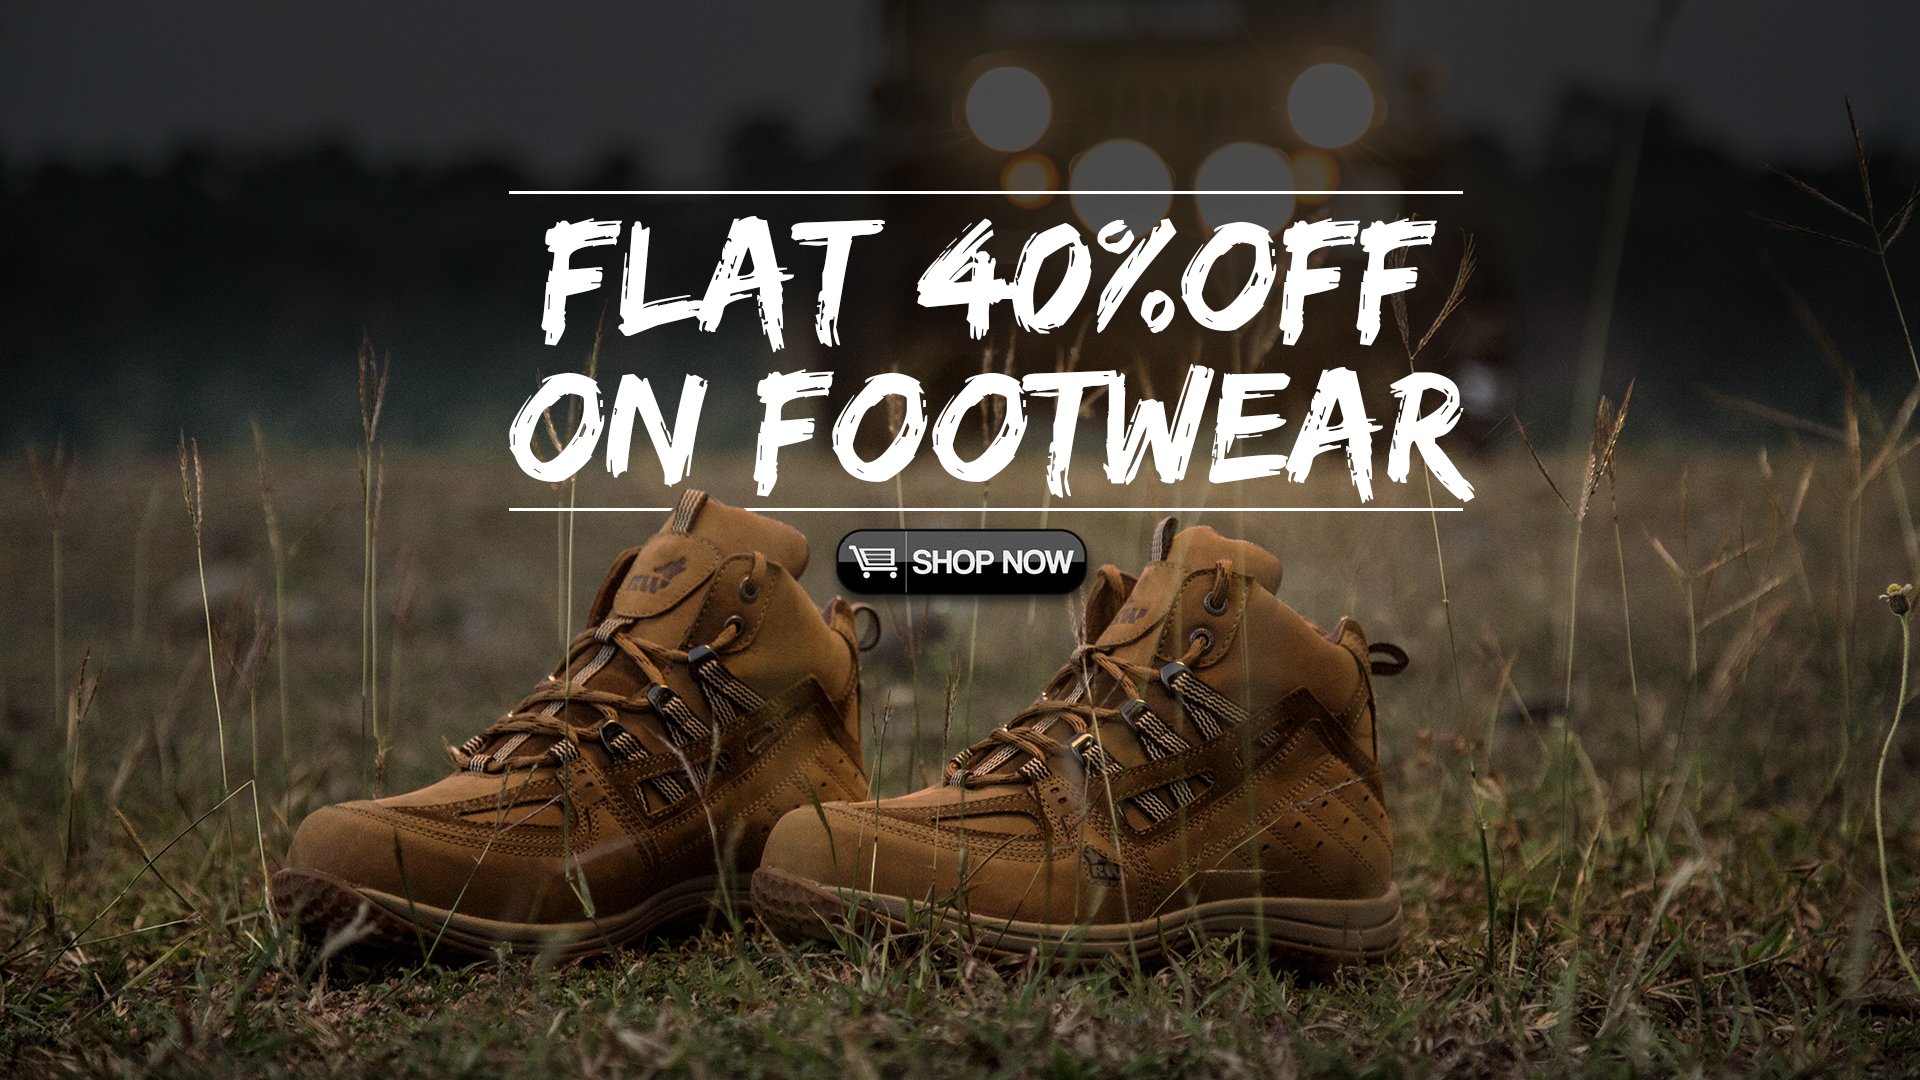 Get upto 45% off on Formal Footwear